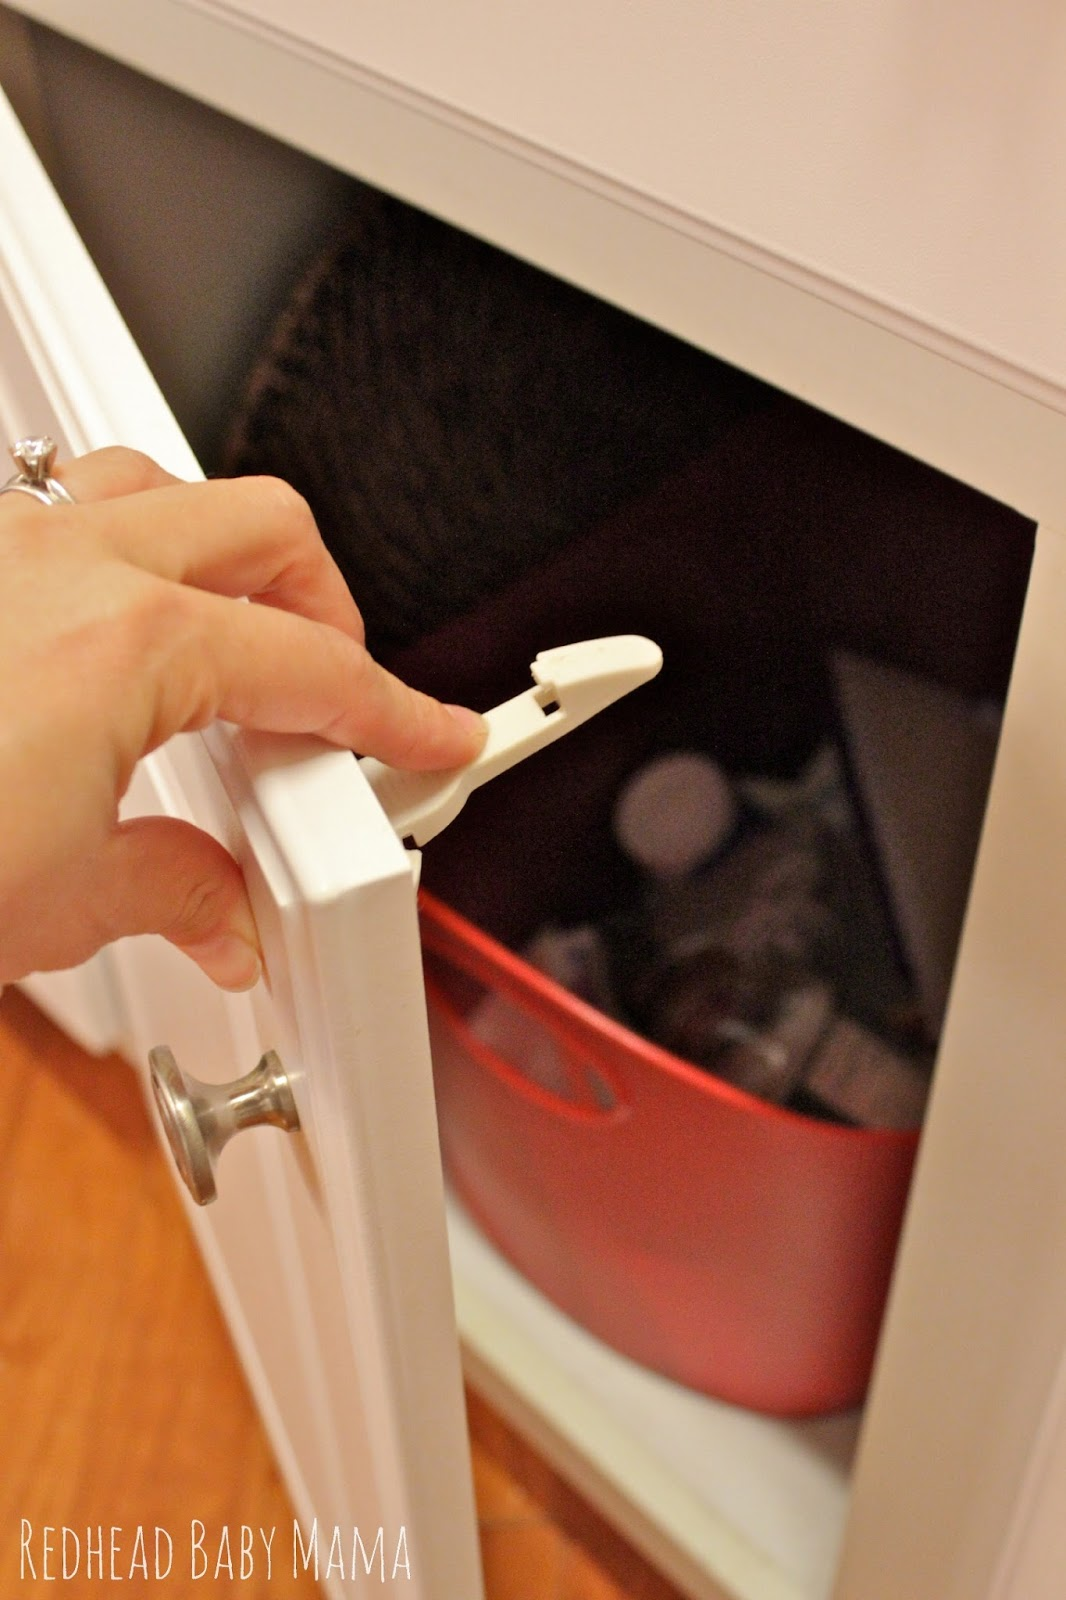 How To Install Baby Proof Cabinet Locks